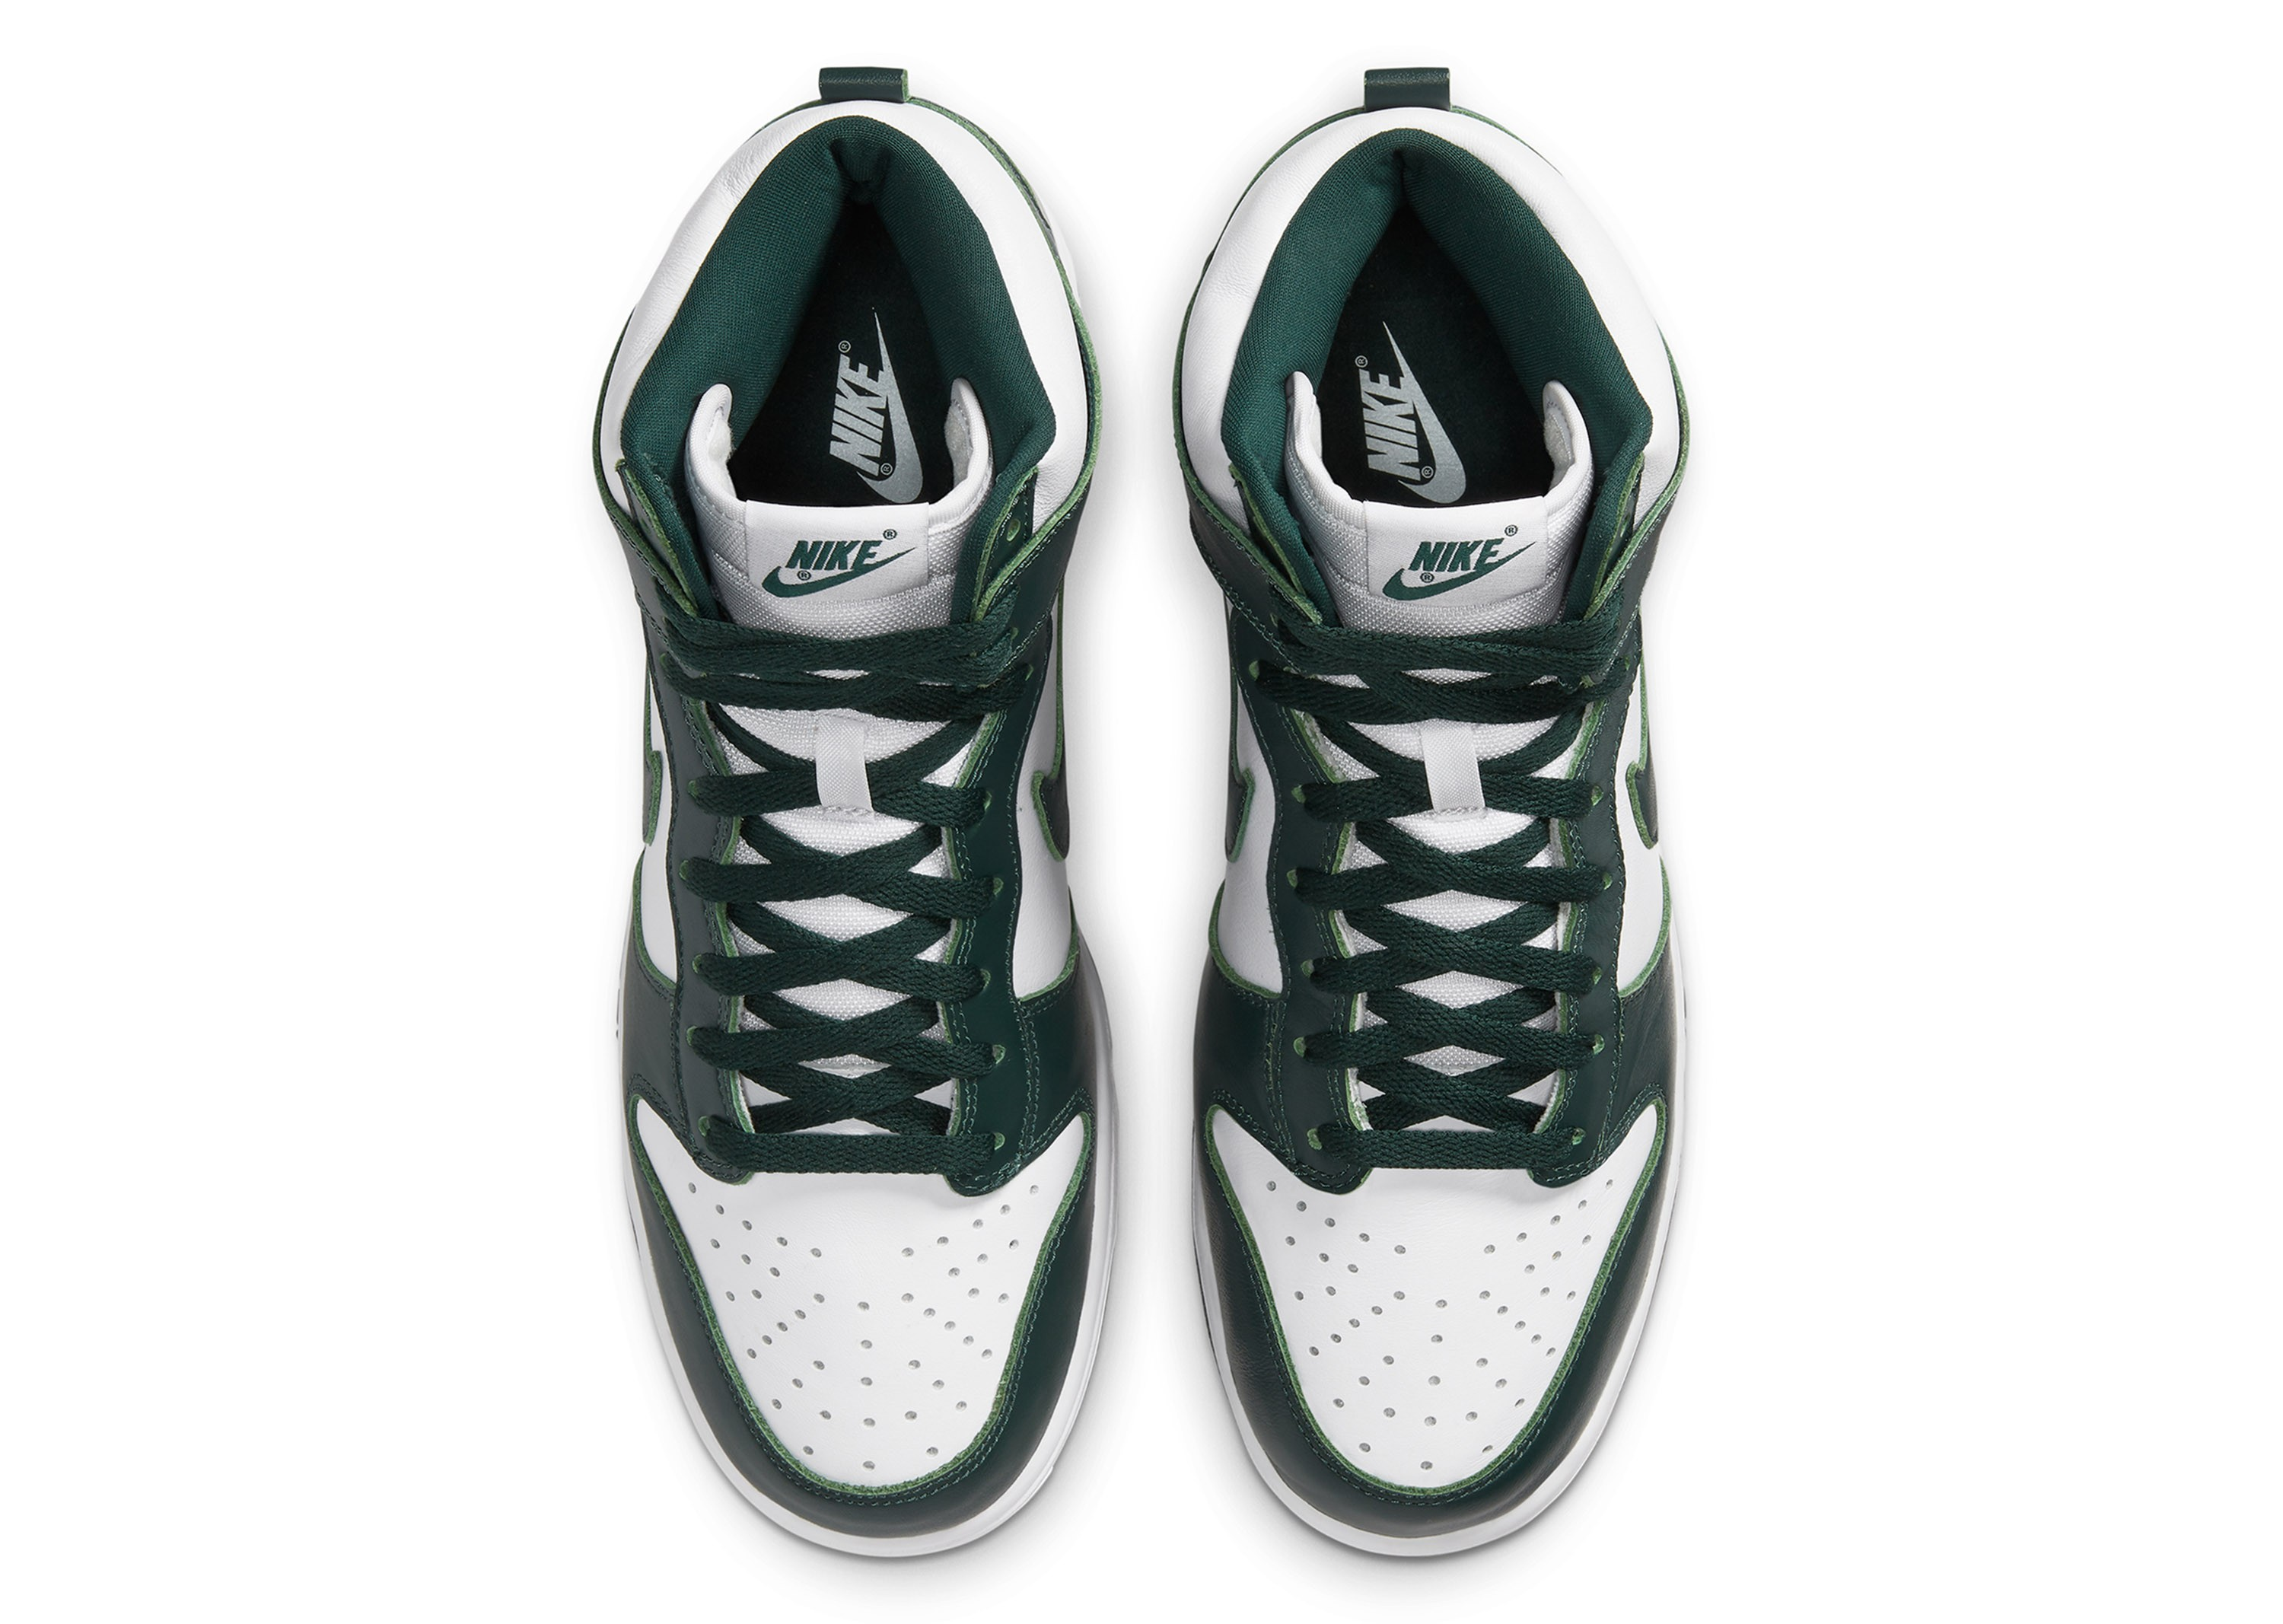 dunk_high_michigan_state__0002_nike-dunk-high-pine-green-michigan-state-university-msu-release-date-2020-003